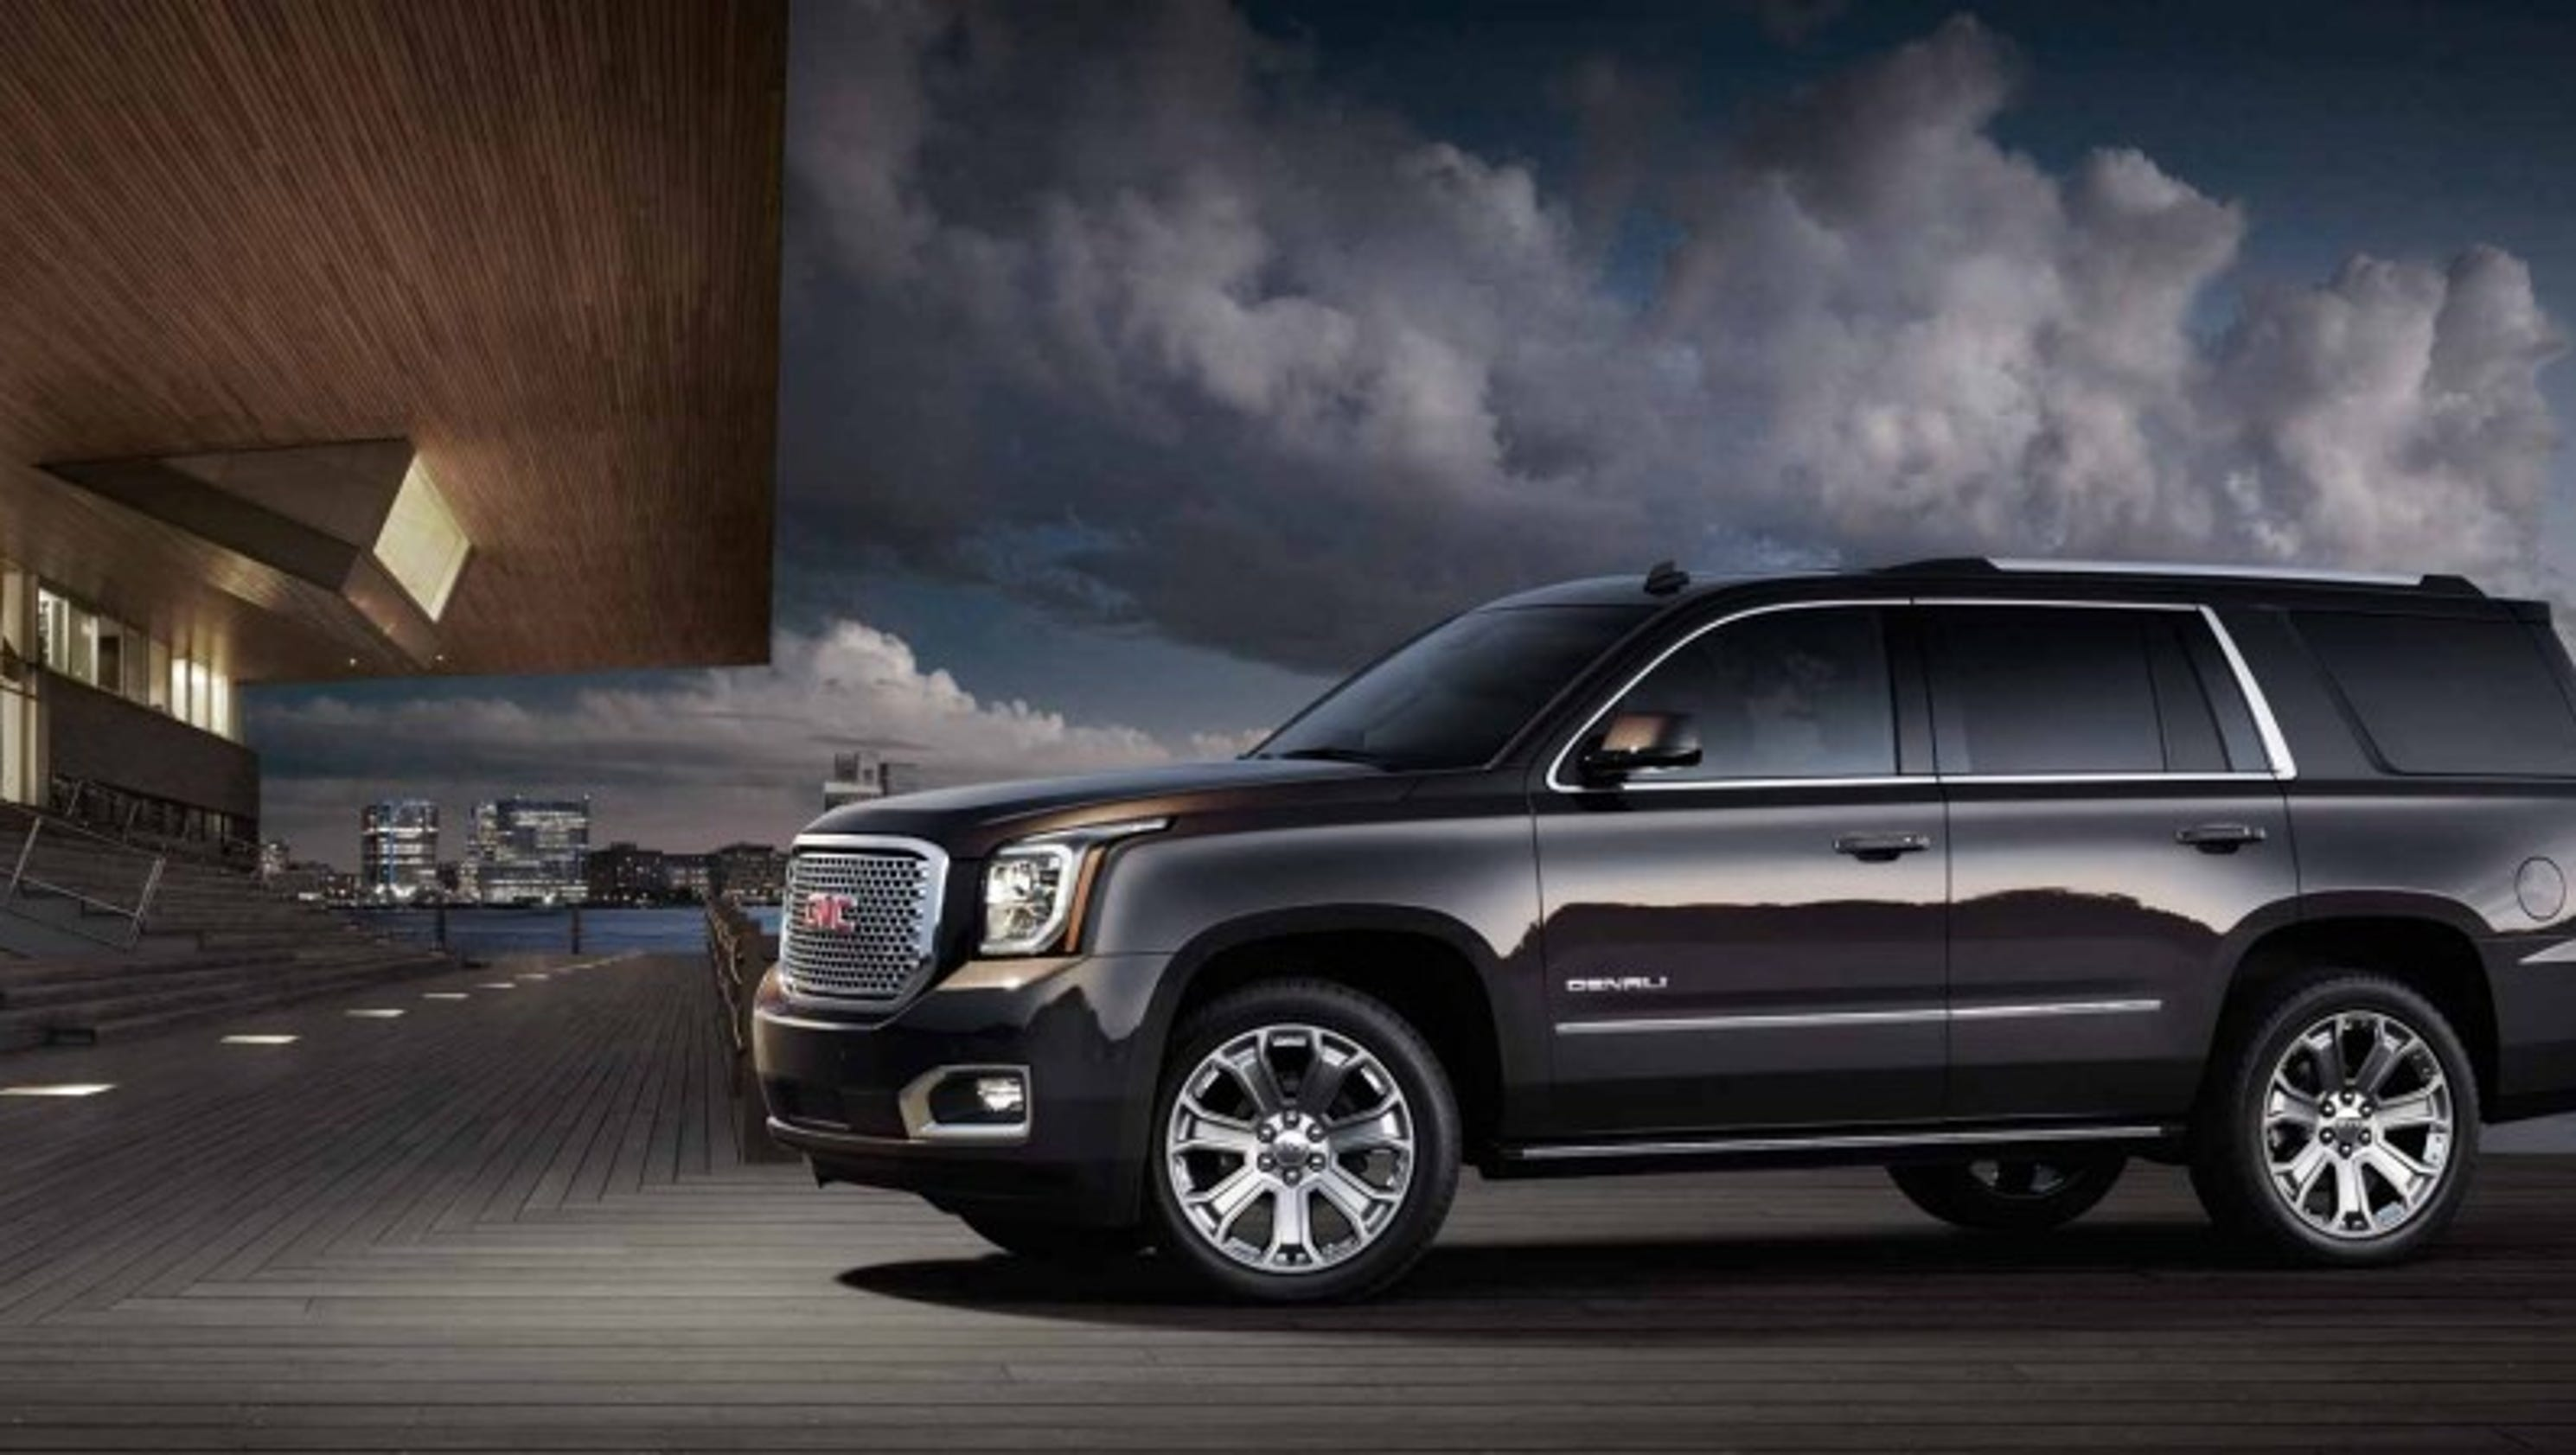 yukon strut for the collection grille denali debuts gmc